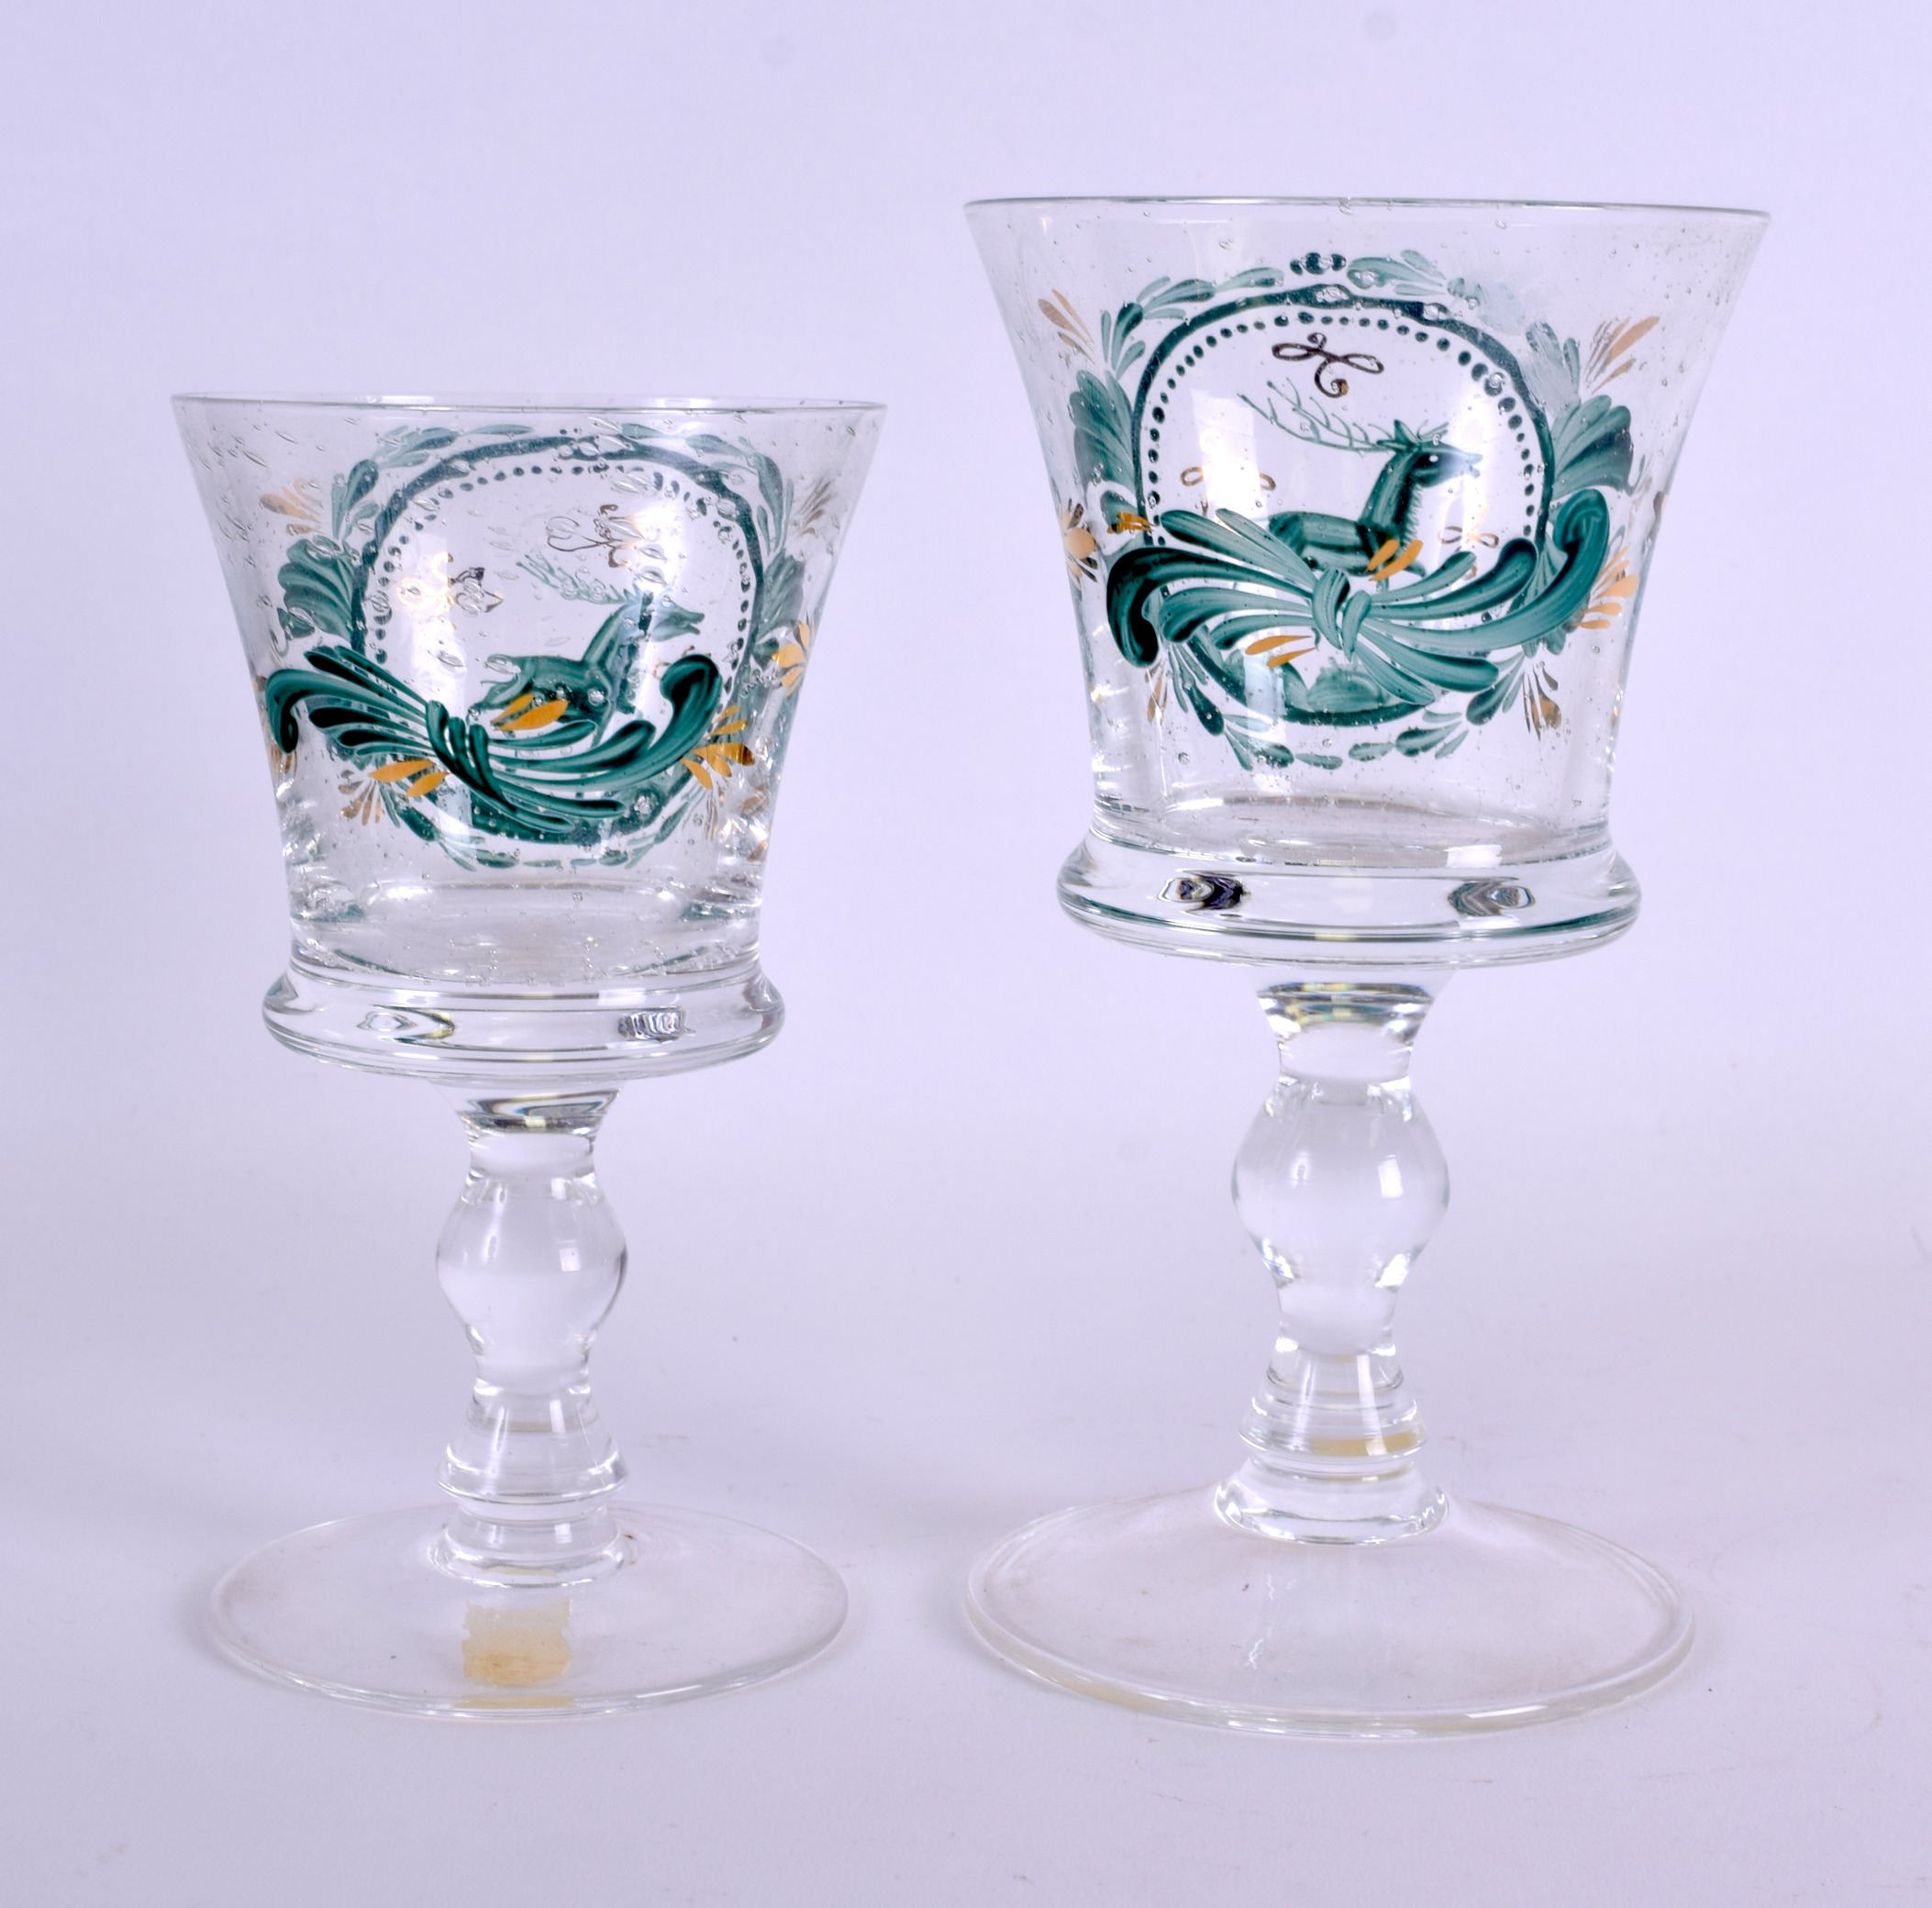 Lot 5 - A 19TH CENTURY GERMAN EAMELLED GLASS CUP together with a matching cup, painted with stags within